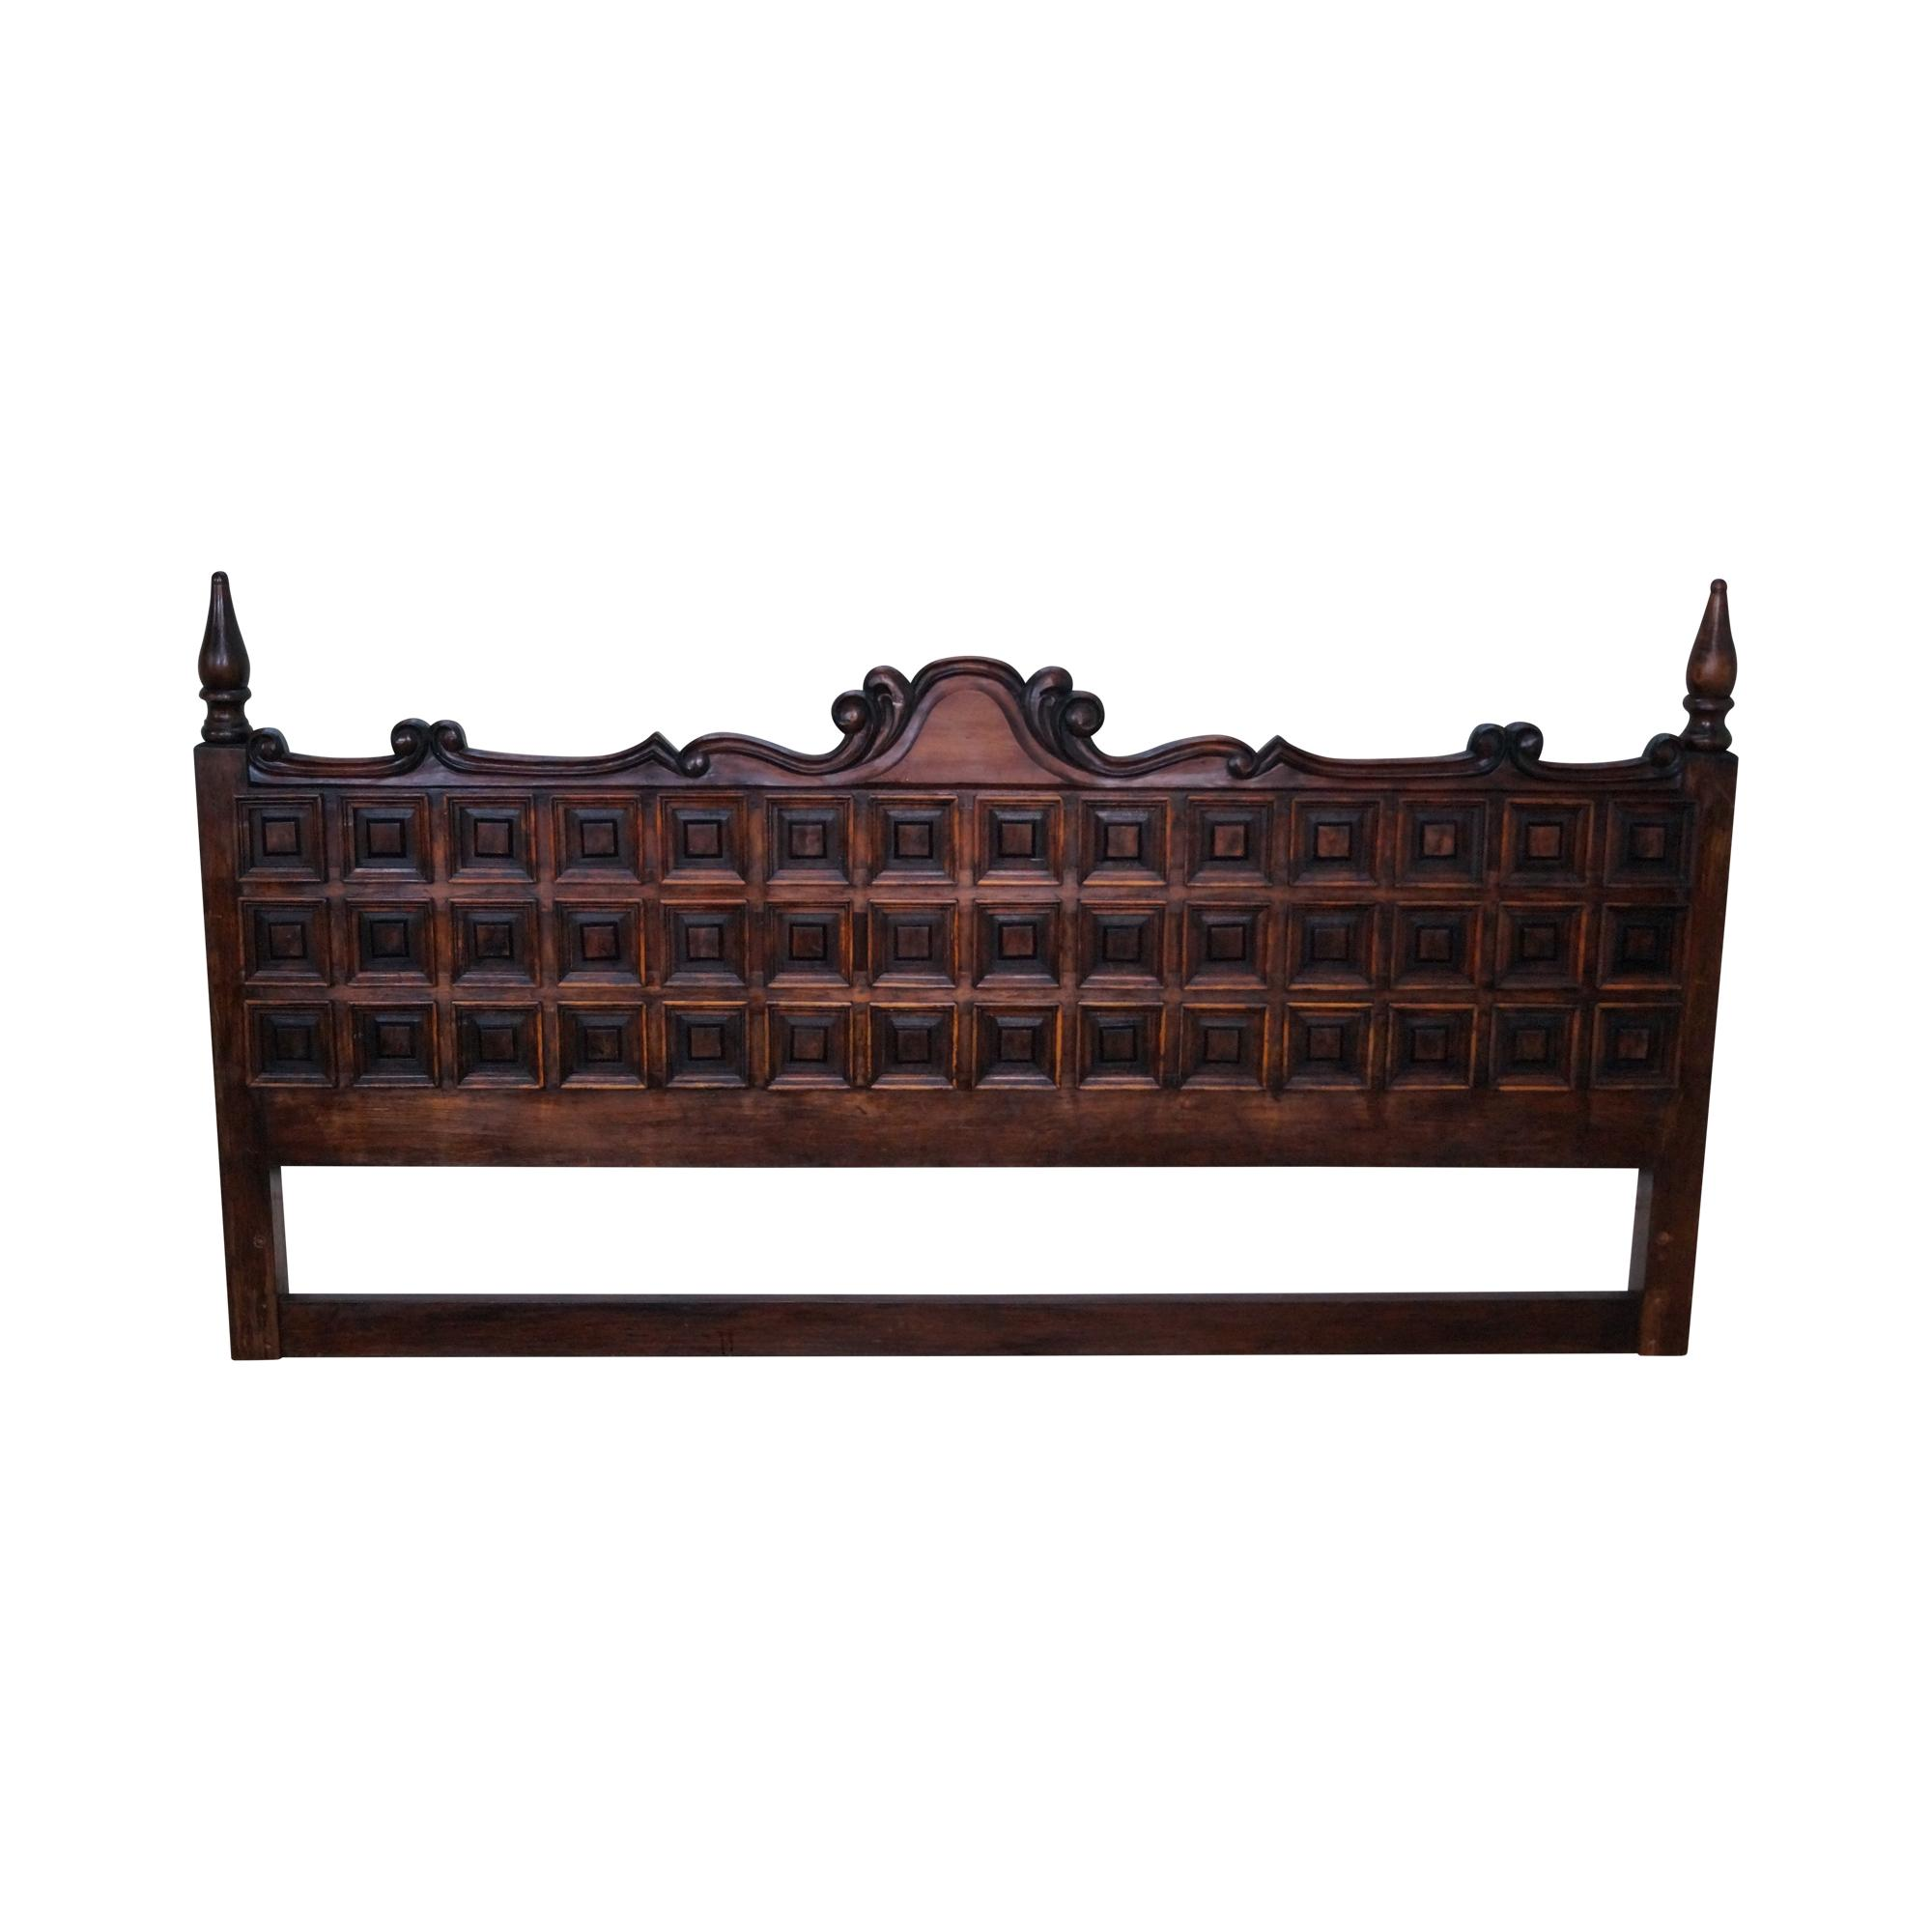 vintage spanish style rustic raised panel king headboard chairish. Black Bedroom Furniture Sets. Home Design Ideas